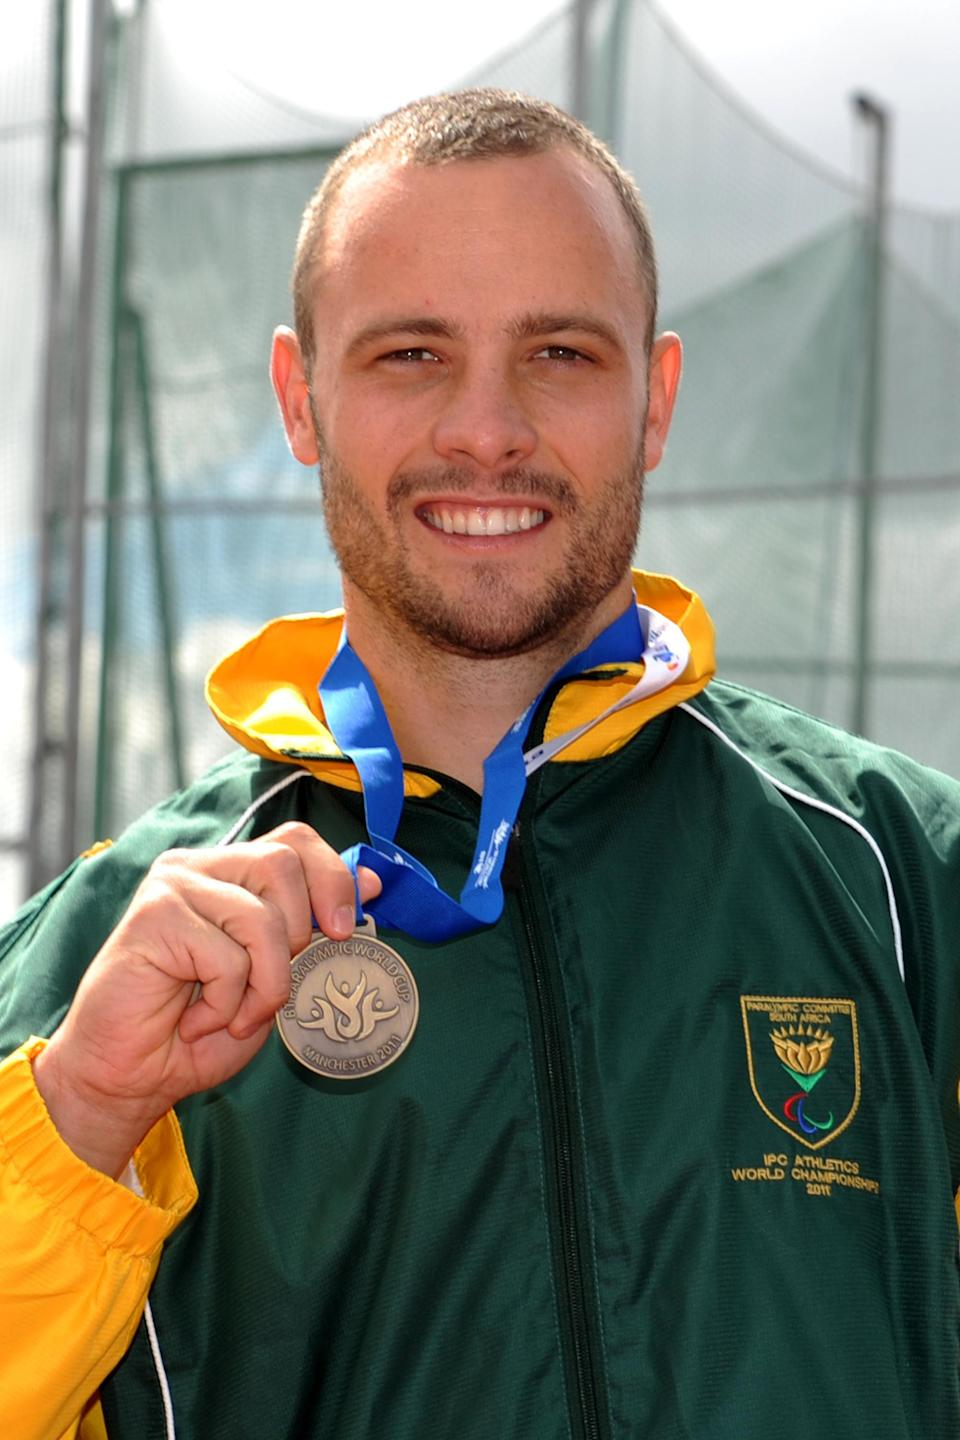 South Africa's Oscar Pistorius celebrates with his Gold medal after winning the Men's T44 100m during the Paralympic World Cup in Manchester.